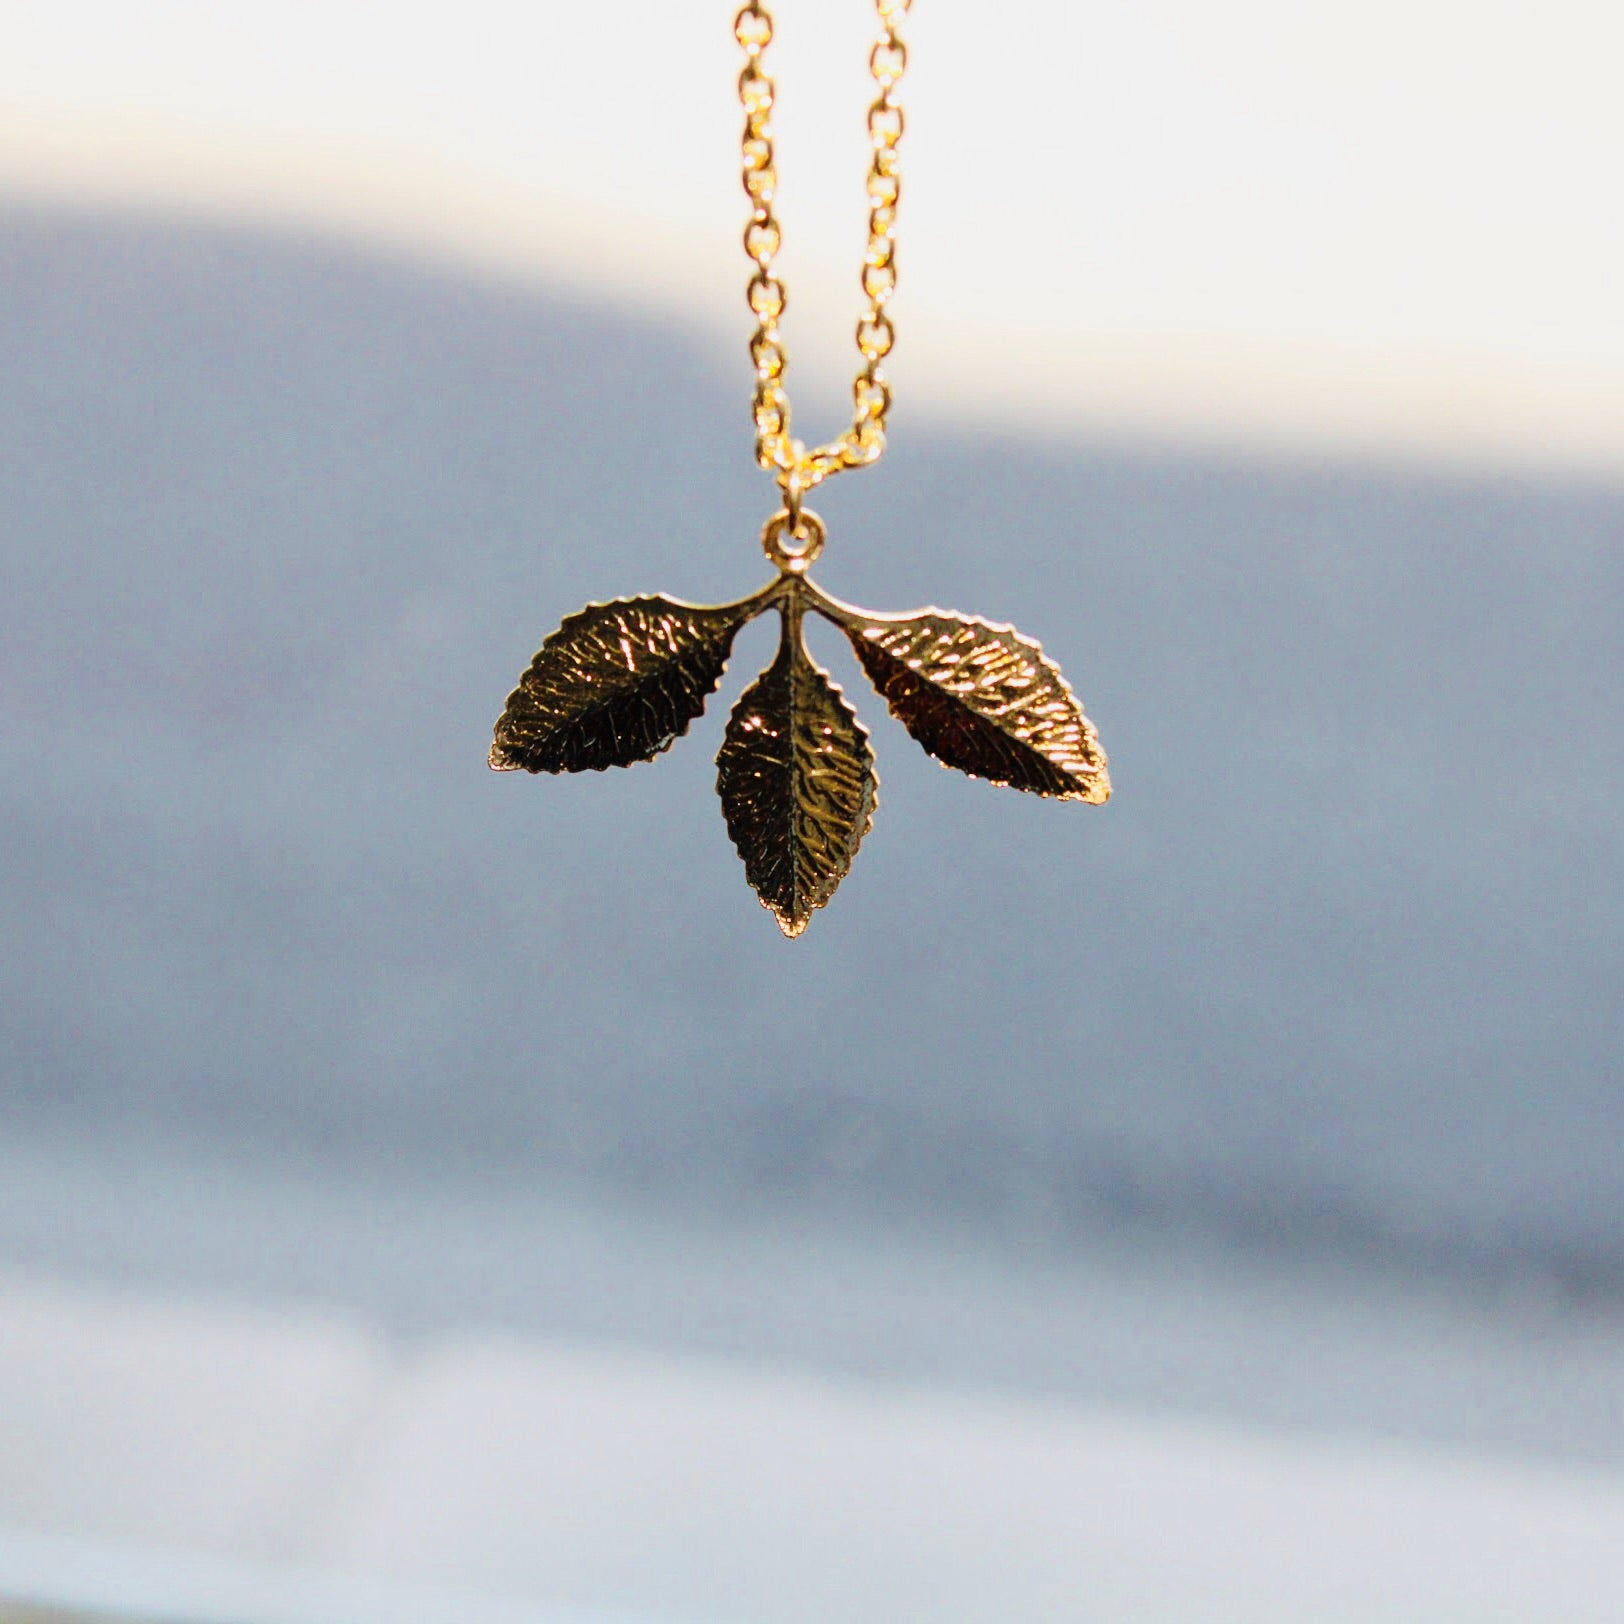 Leaf Necklace - De Bawa Inc.